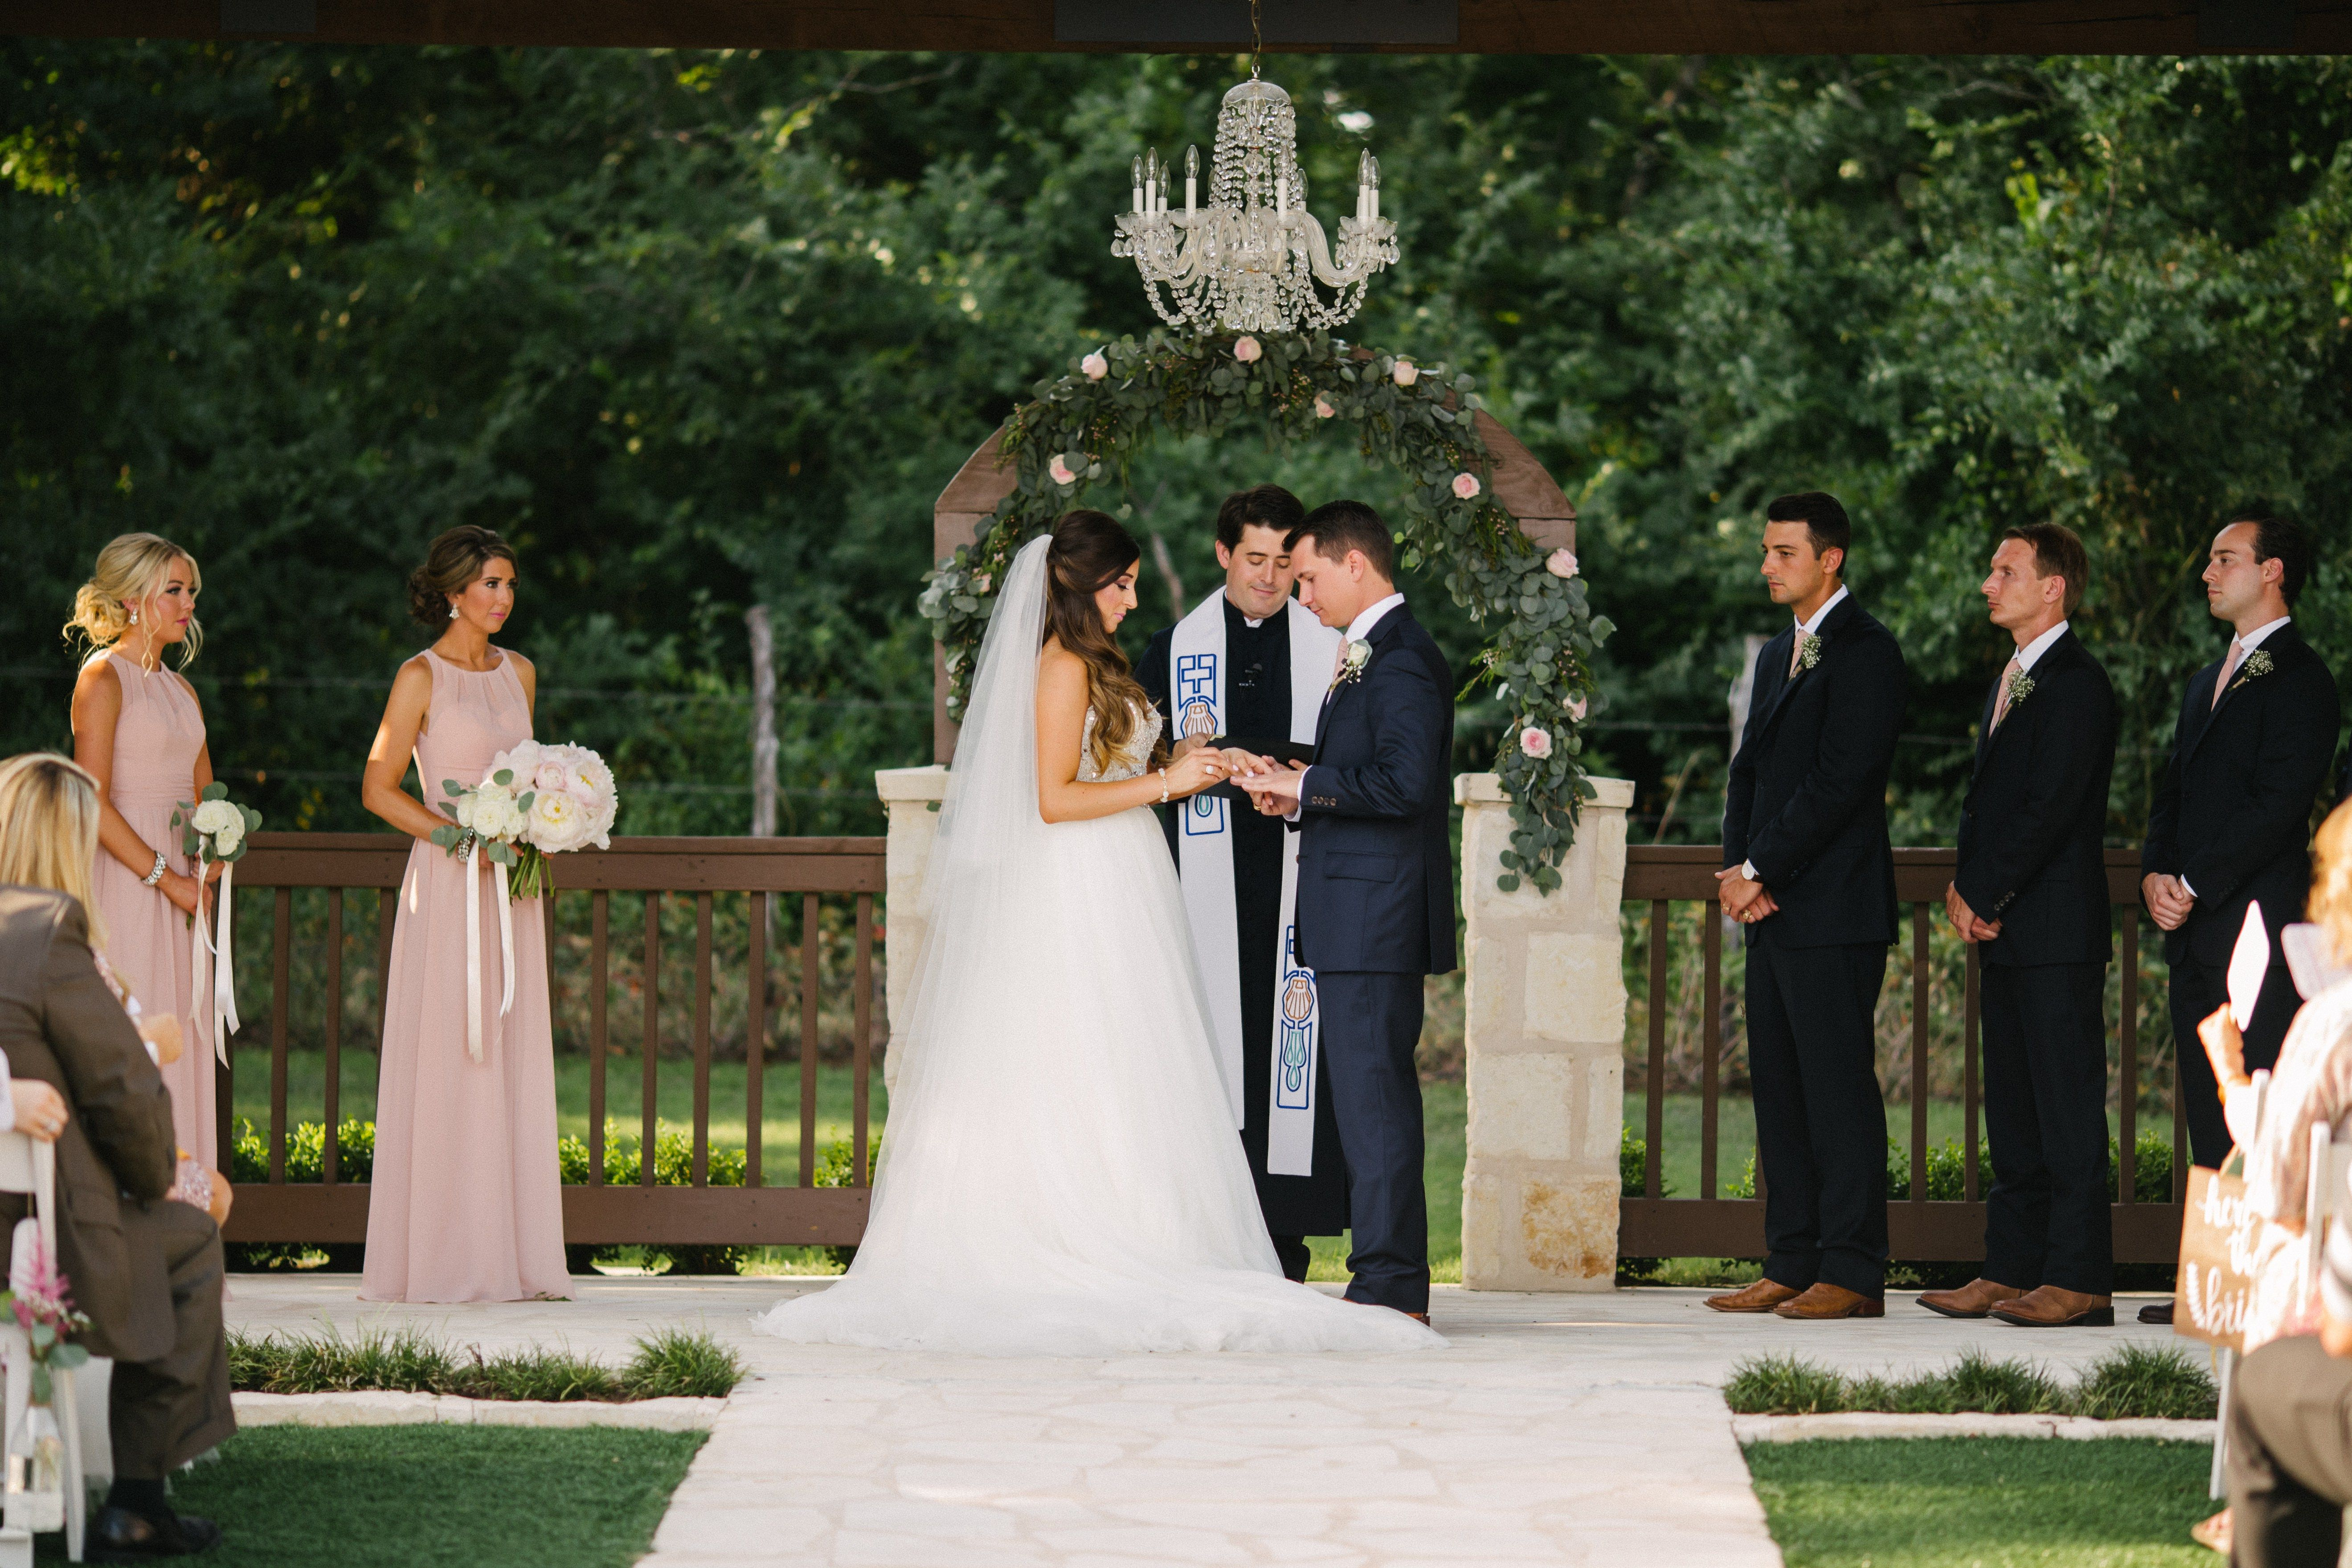 Denton Outdoor Ceremony Site: One Year Of Marriage: Reflecting On Being A Godly Wife